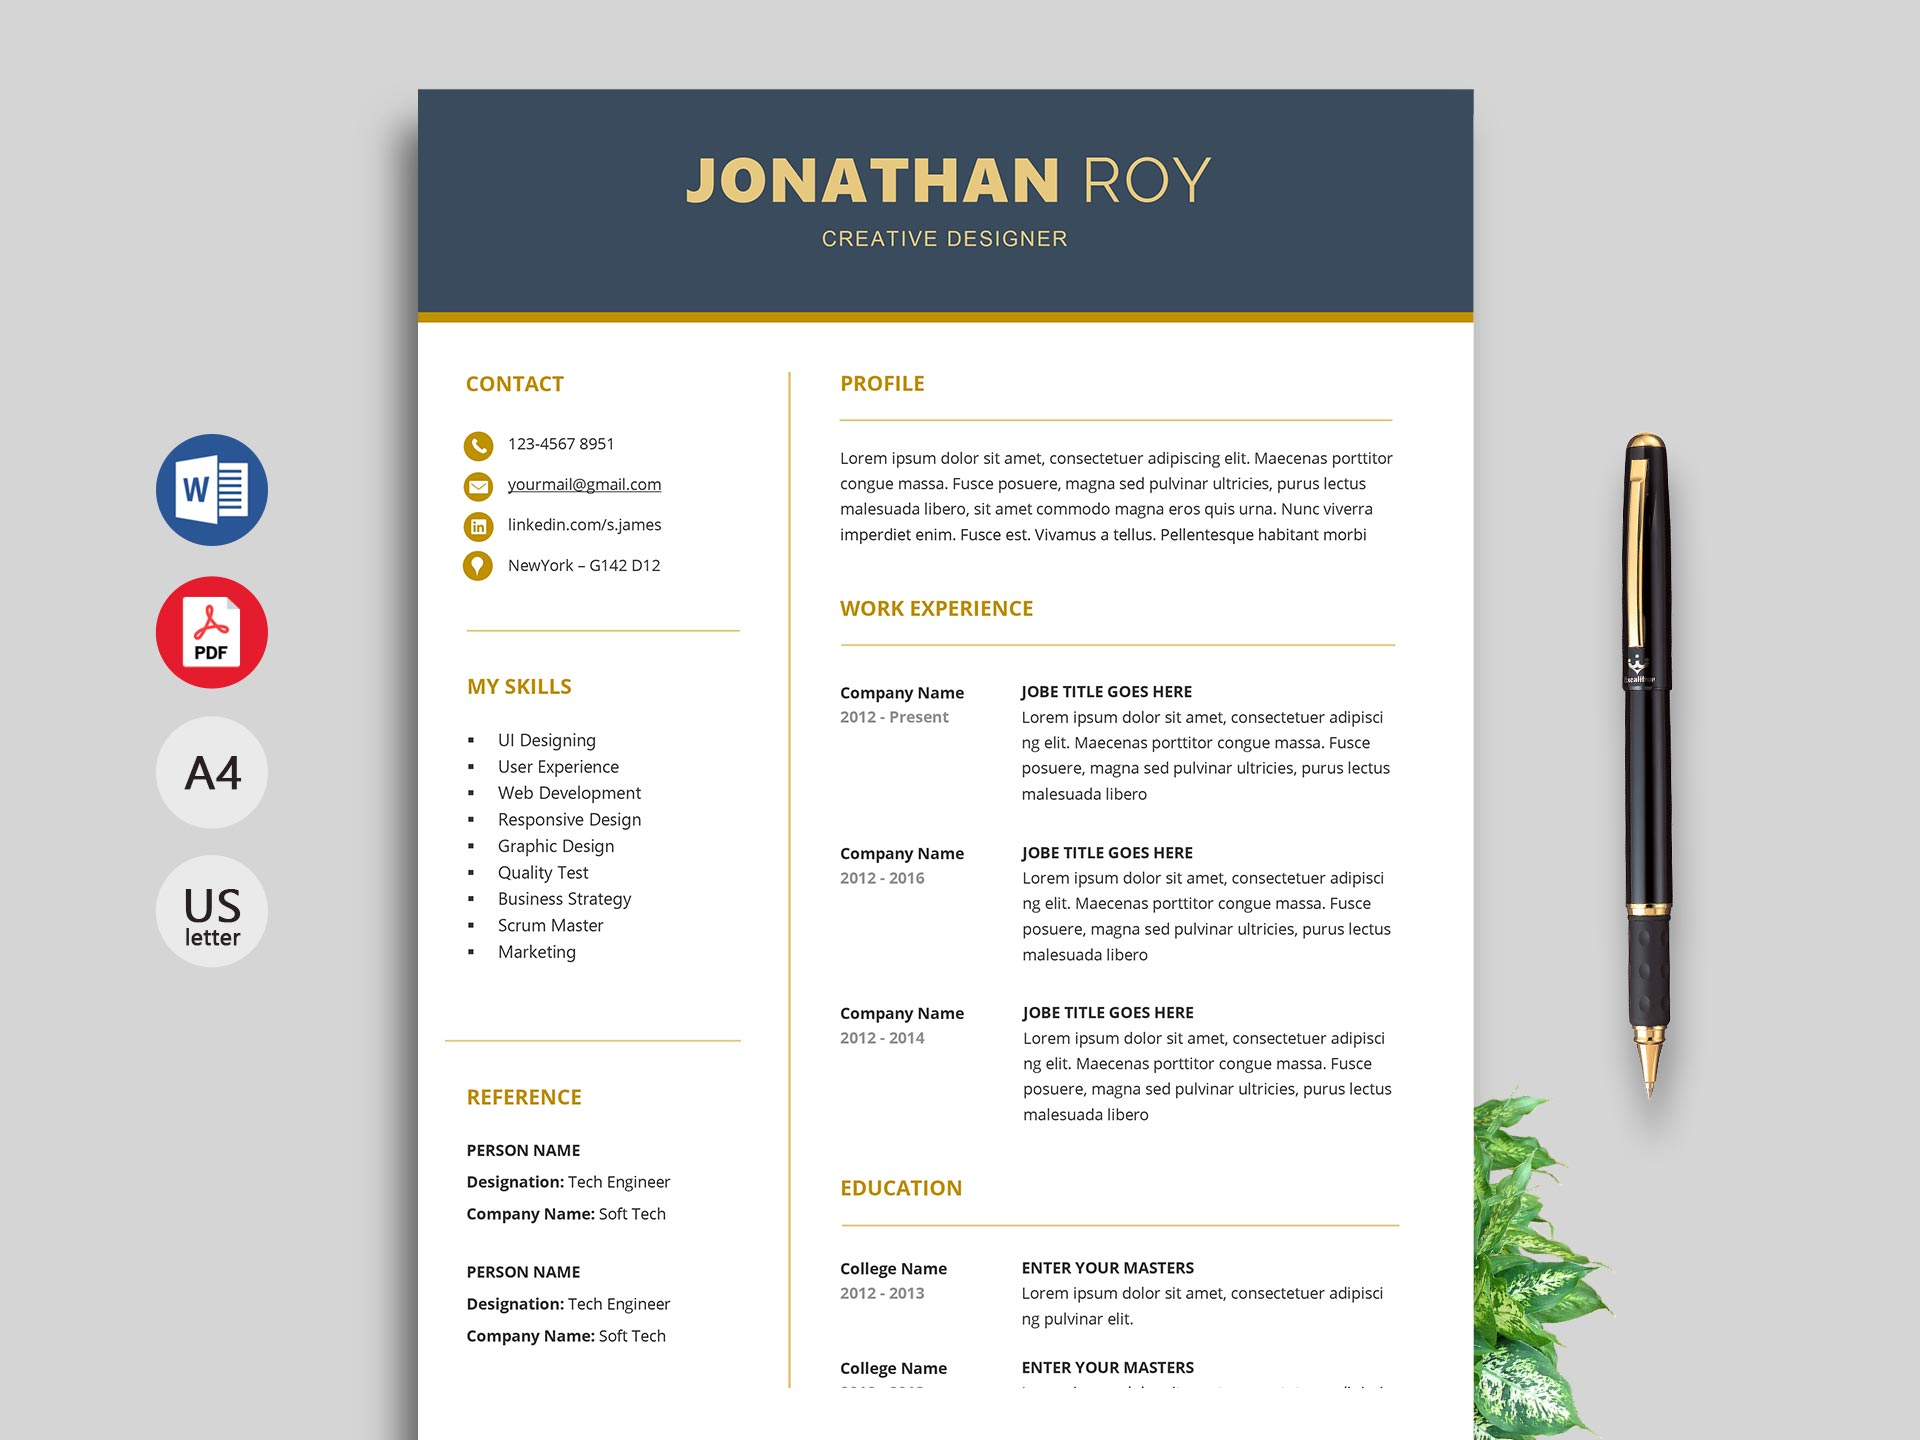 free resume cv templates in word format resumekraft gain template cover photo travel Resume Free Resume Word Download